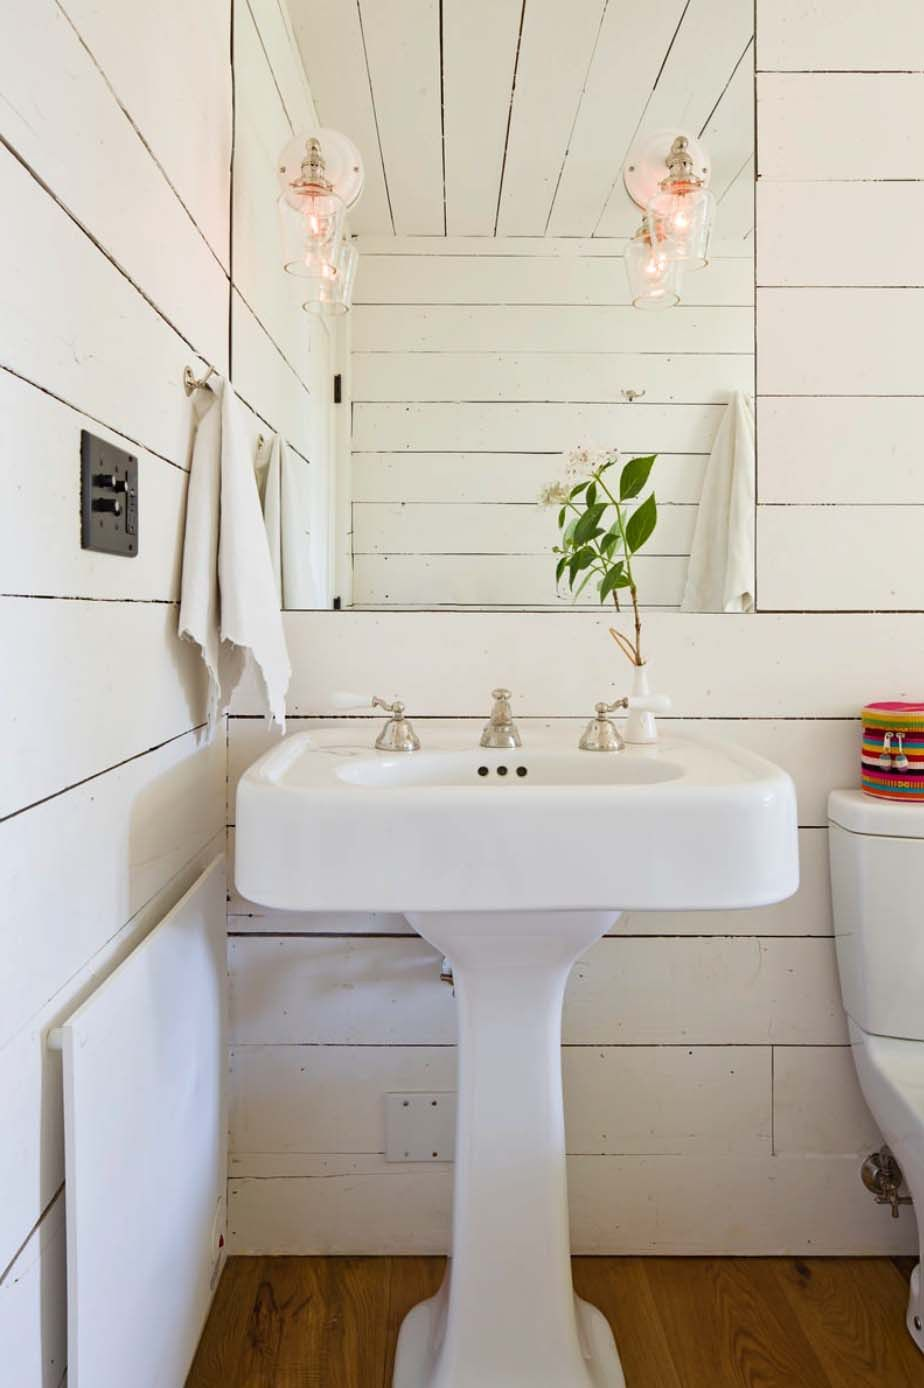 37 Most beautiful examples of using shiplap in the home | Pinterest Causal Board Bathroom Design on house design boards, bathroom wall board, tile design boards, room design boards, kitchen design boards, interior design inspiration boards, jewelry design boards, office design boards, architecture design boards, commercial design boards, car design boards, art boards, furniture design boards, hotel design boards, fireplaces boards, living design boards, asian interior design boards, bathroom home, bedroom design boards, exterior design boards,